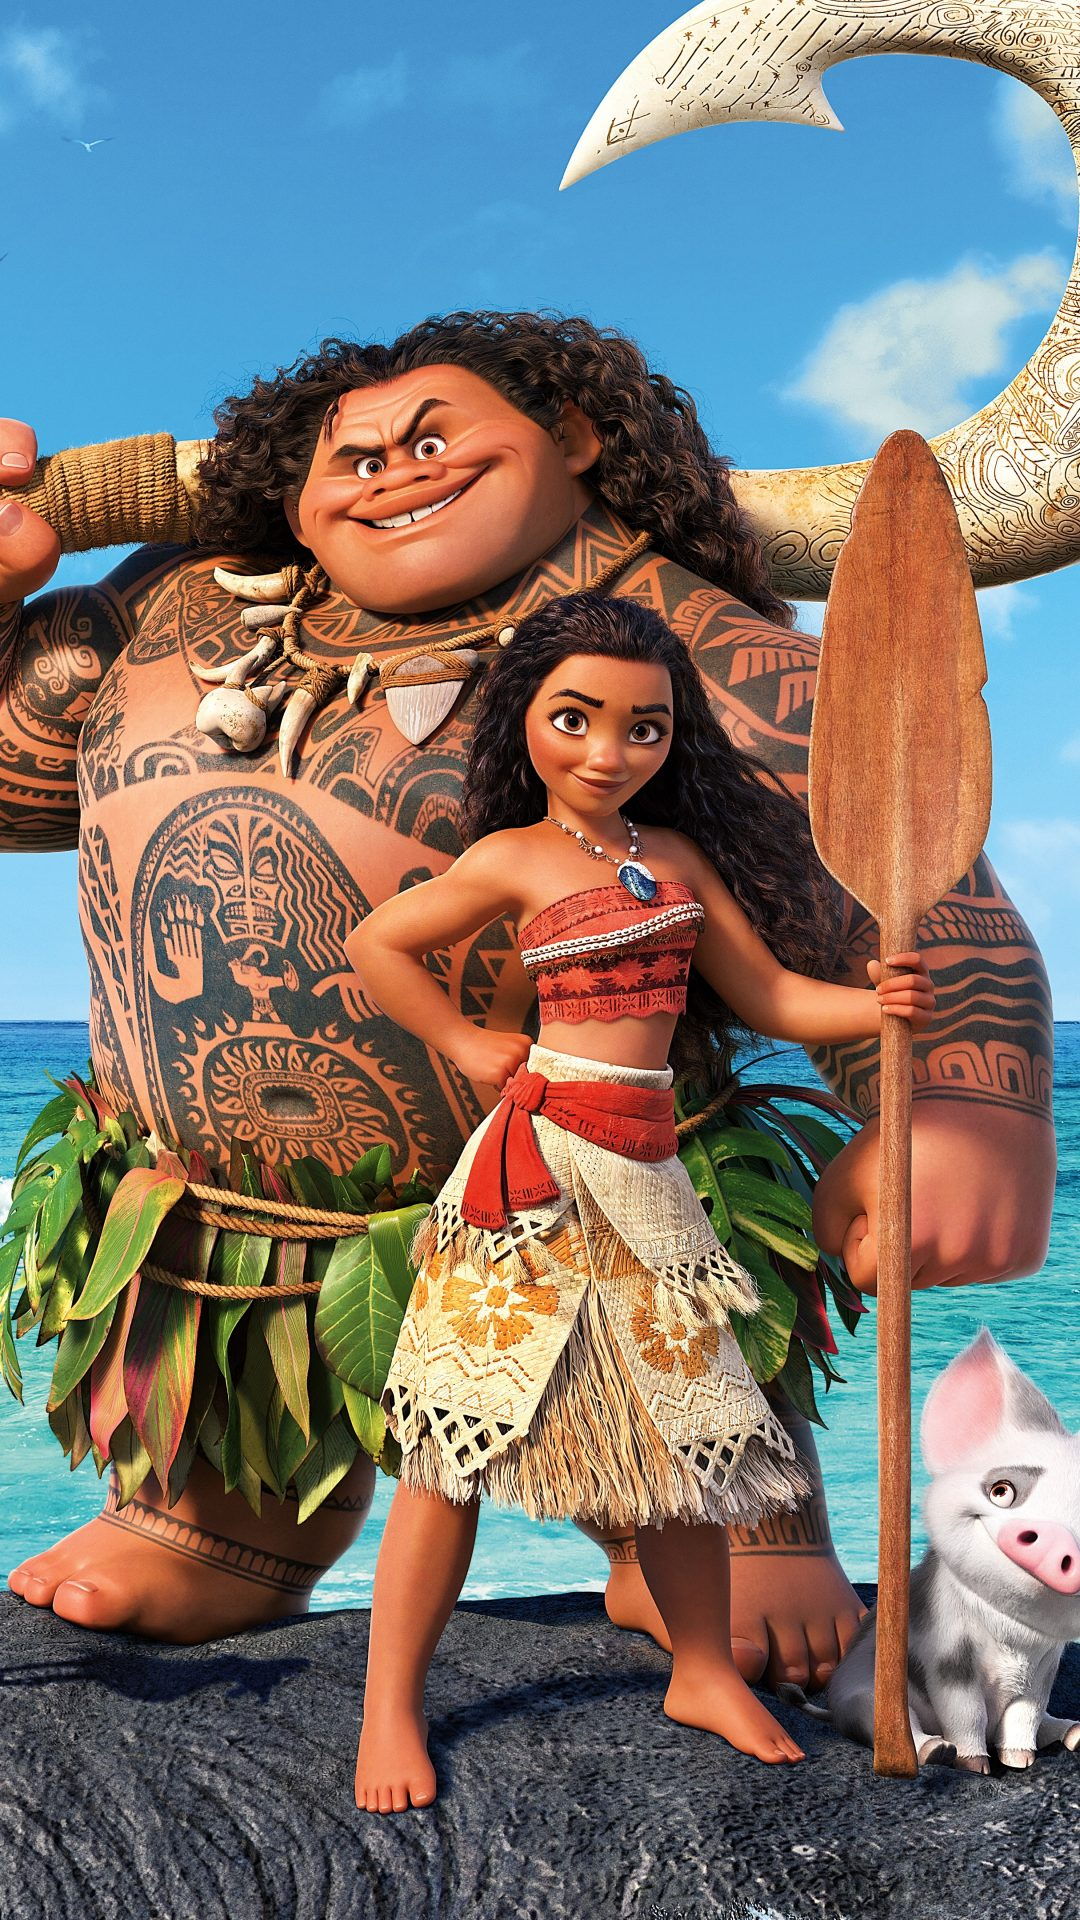 Animated Wallpaper Iphone Download Moana Movie Wallpaper 4k Hd Wallpaper Background